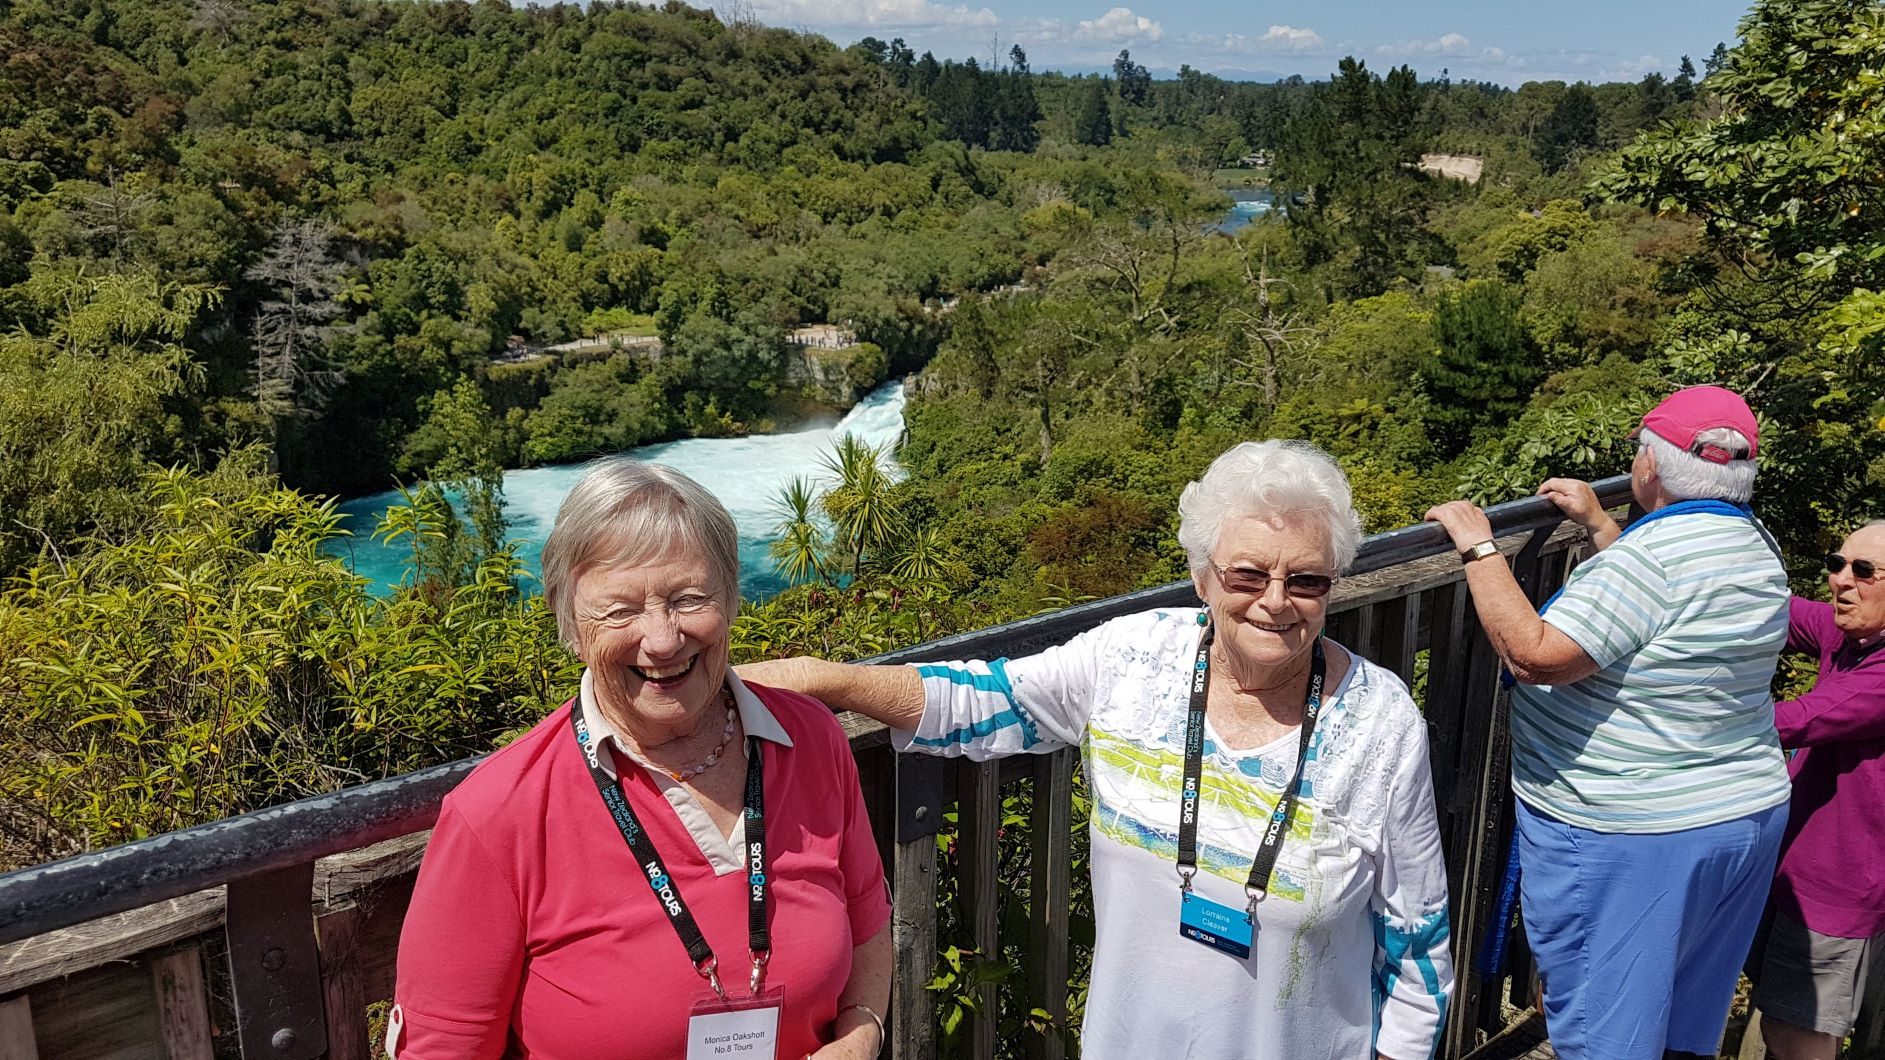 A quick stop along the way to view the wonderful Huka Falls and the 'crazy's' in the jet boats